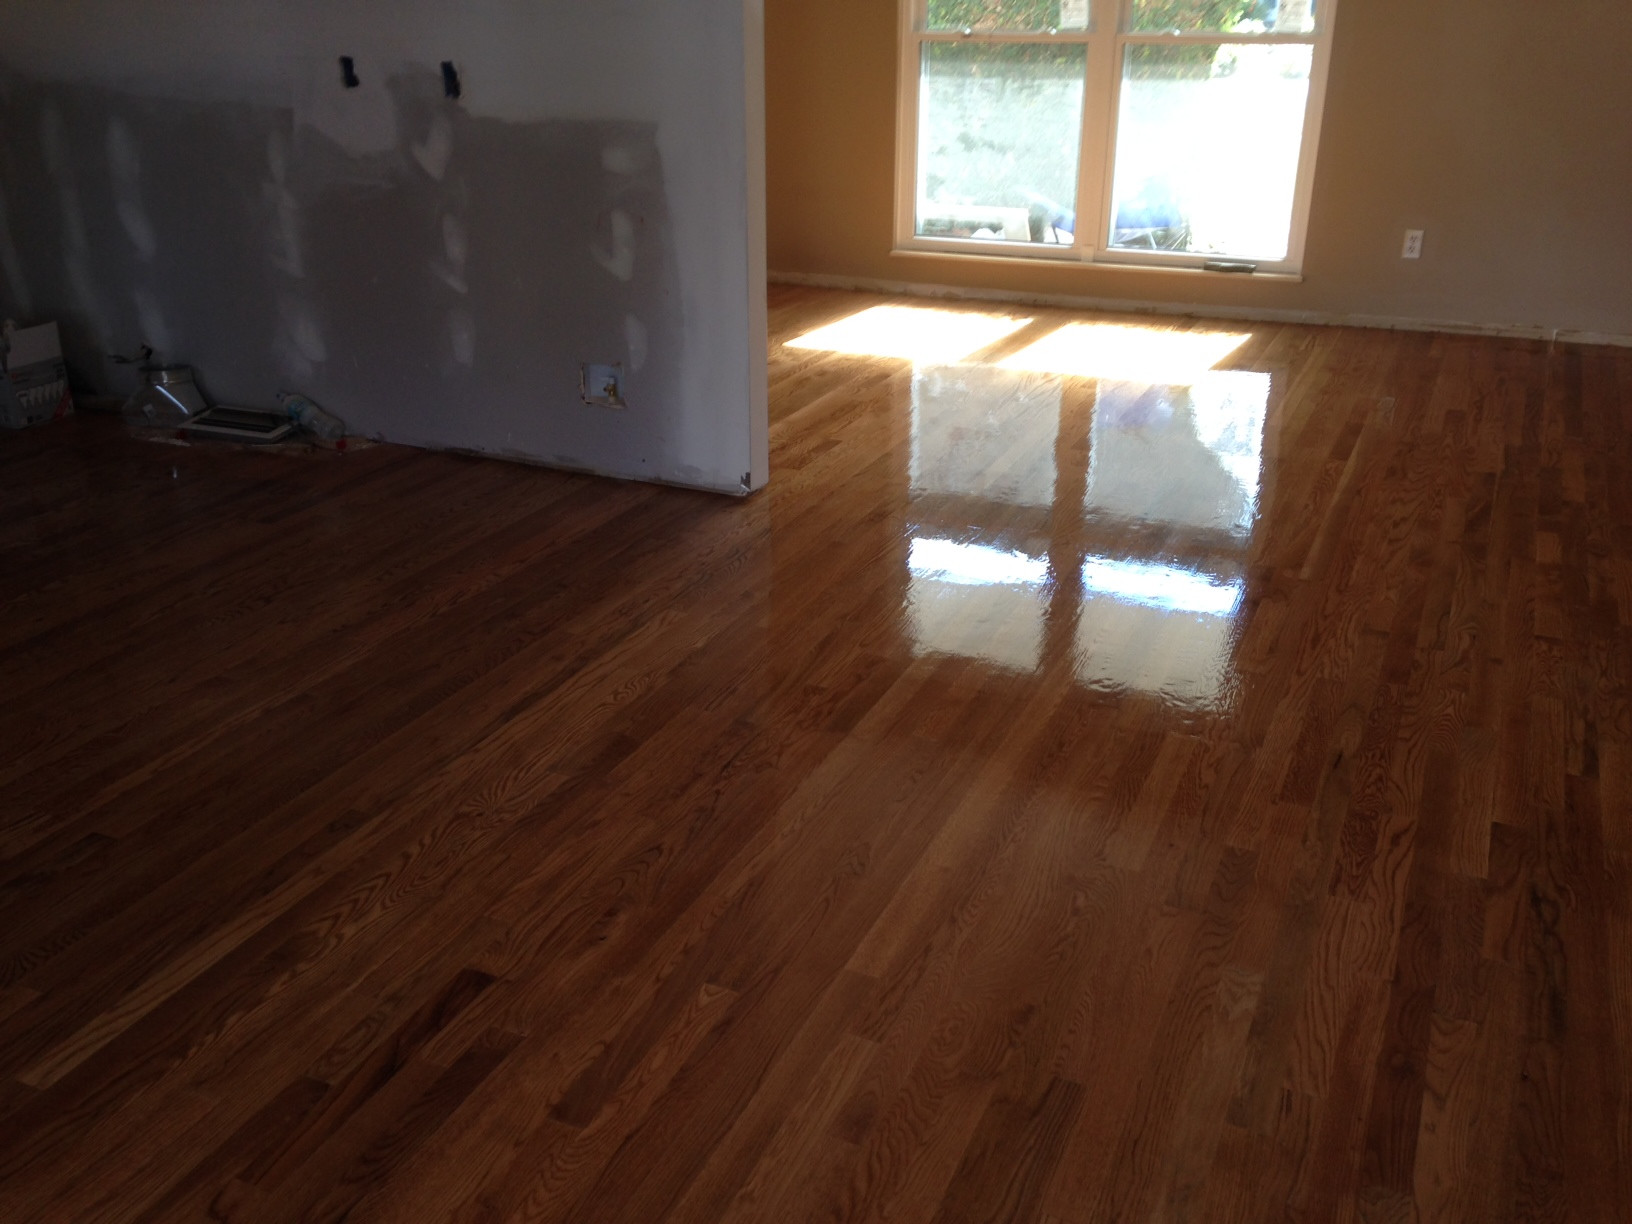 humidity for hardwood floors of hardwood floor cupping hardwood floor refinishing project how long intended for hardwood floor cupping quality wood flooring tile and stone in neptune beach florida